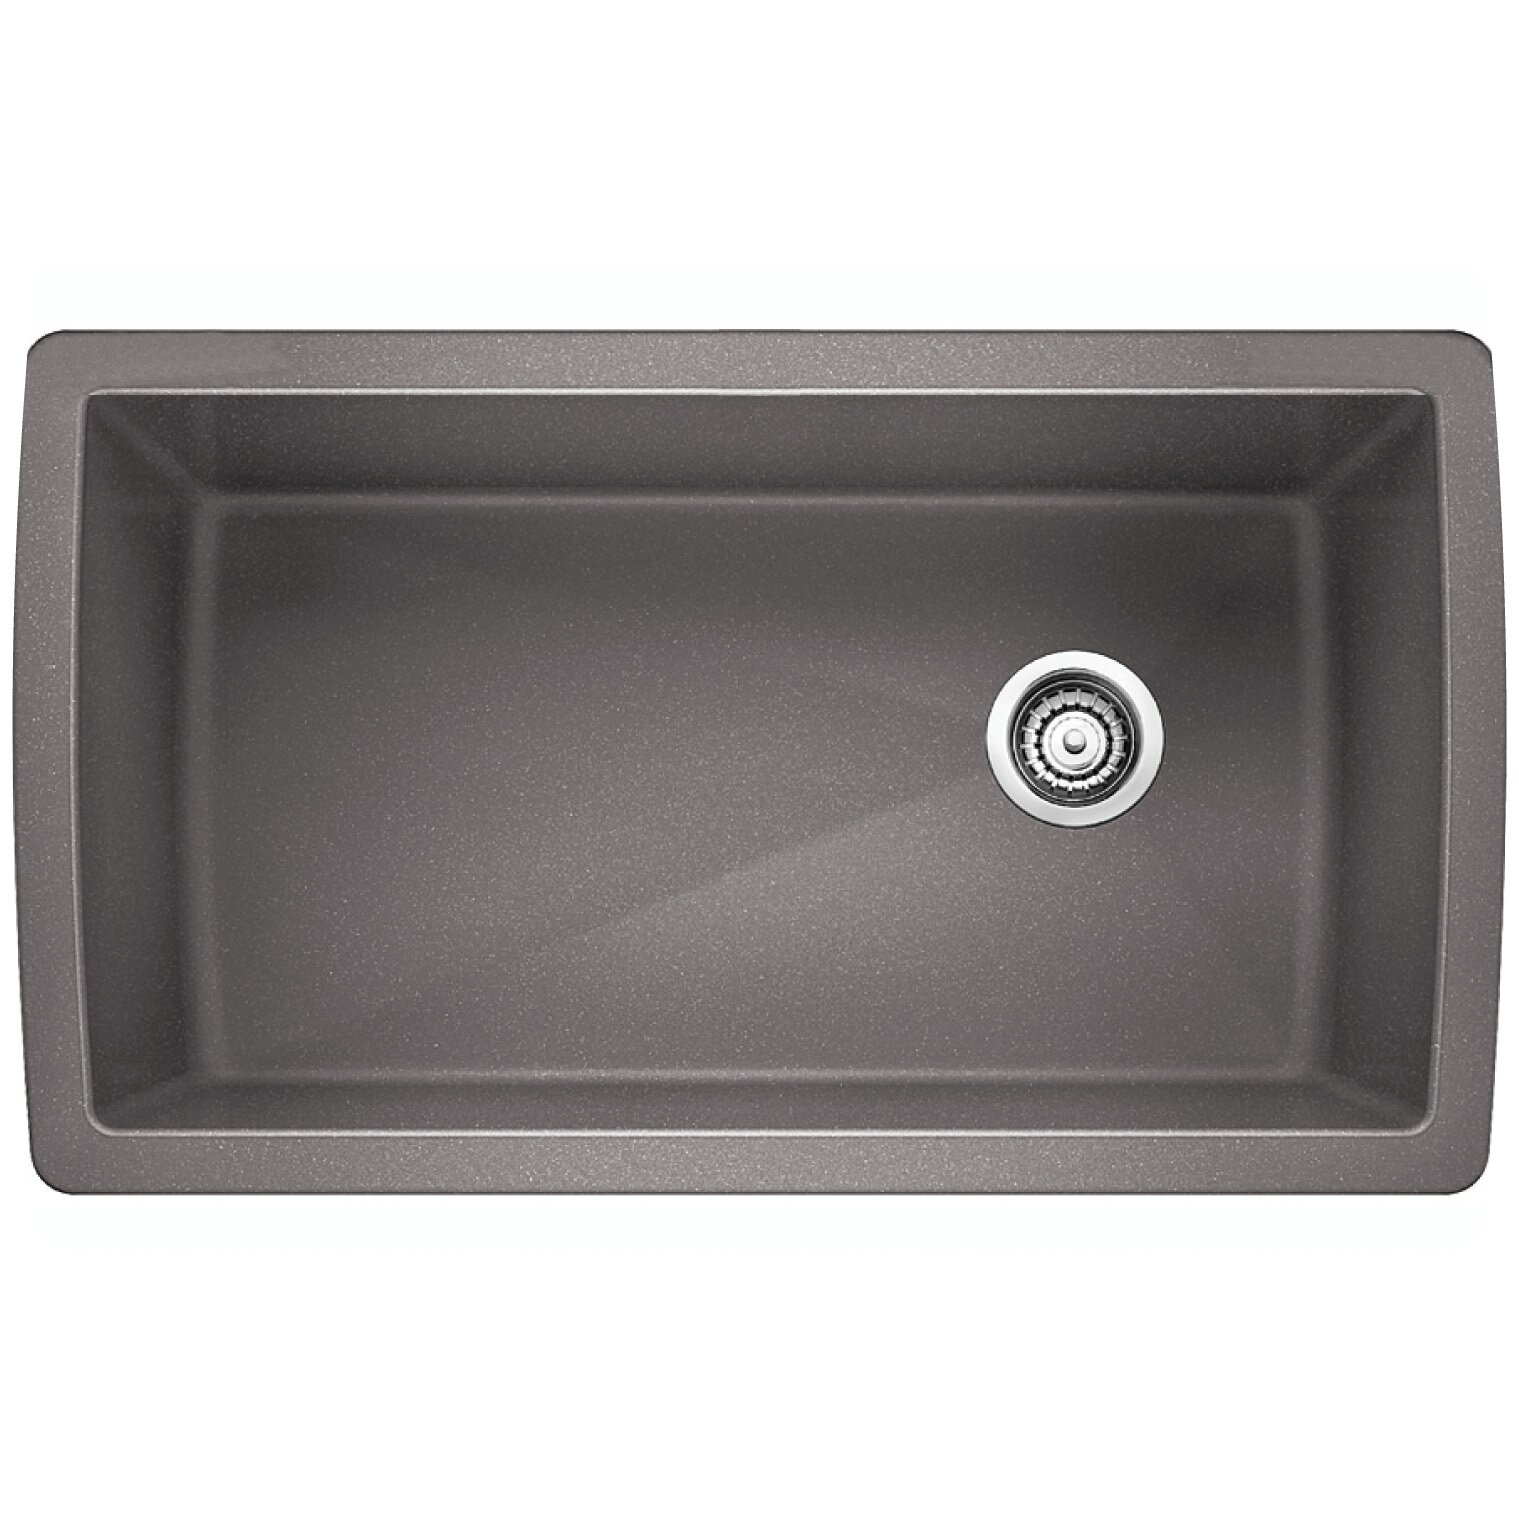 Granite Undermount Kitchen Sinks Granite Composite Kitchen Sinks Youll Love Wayfair